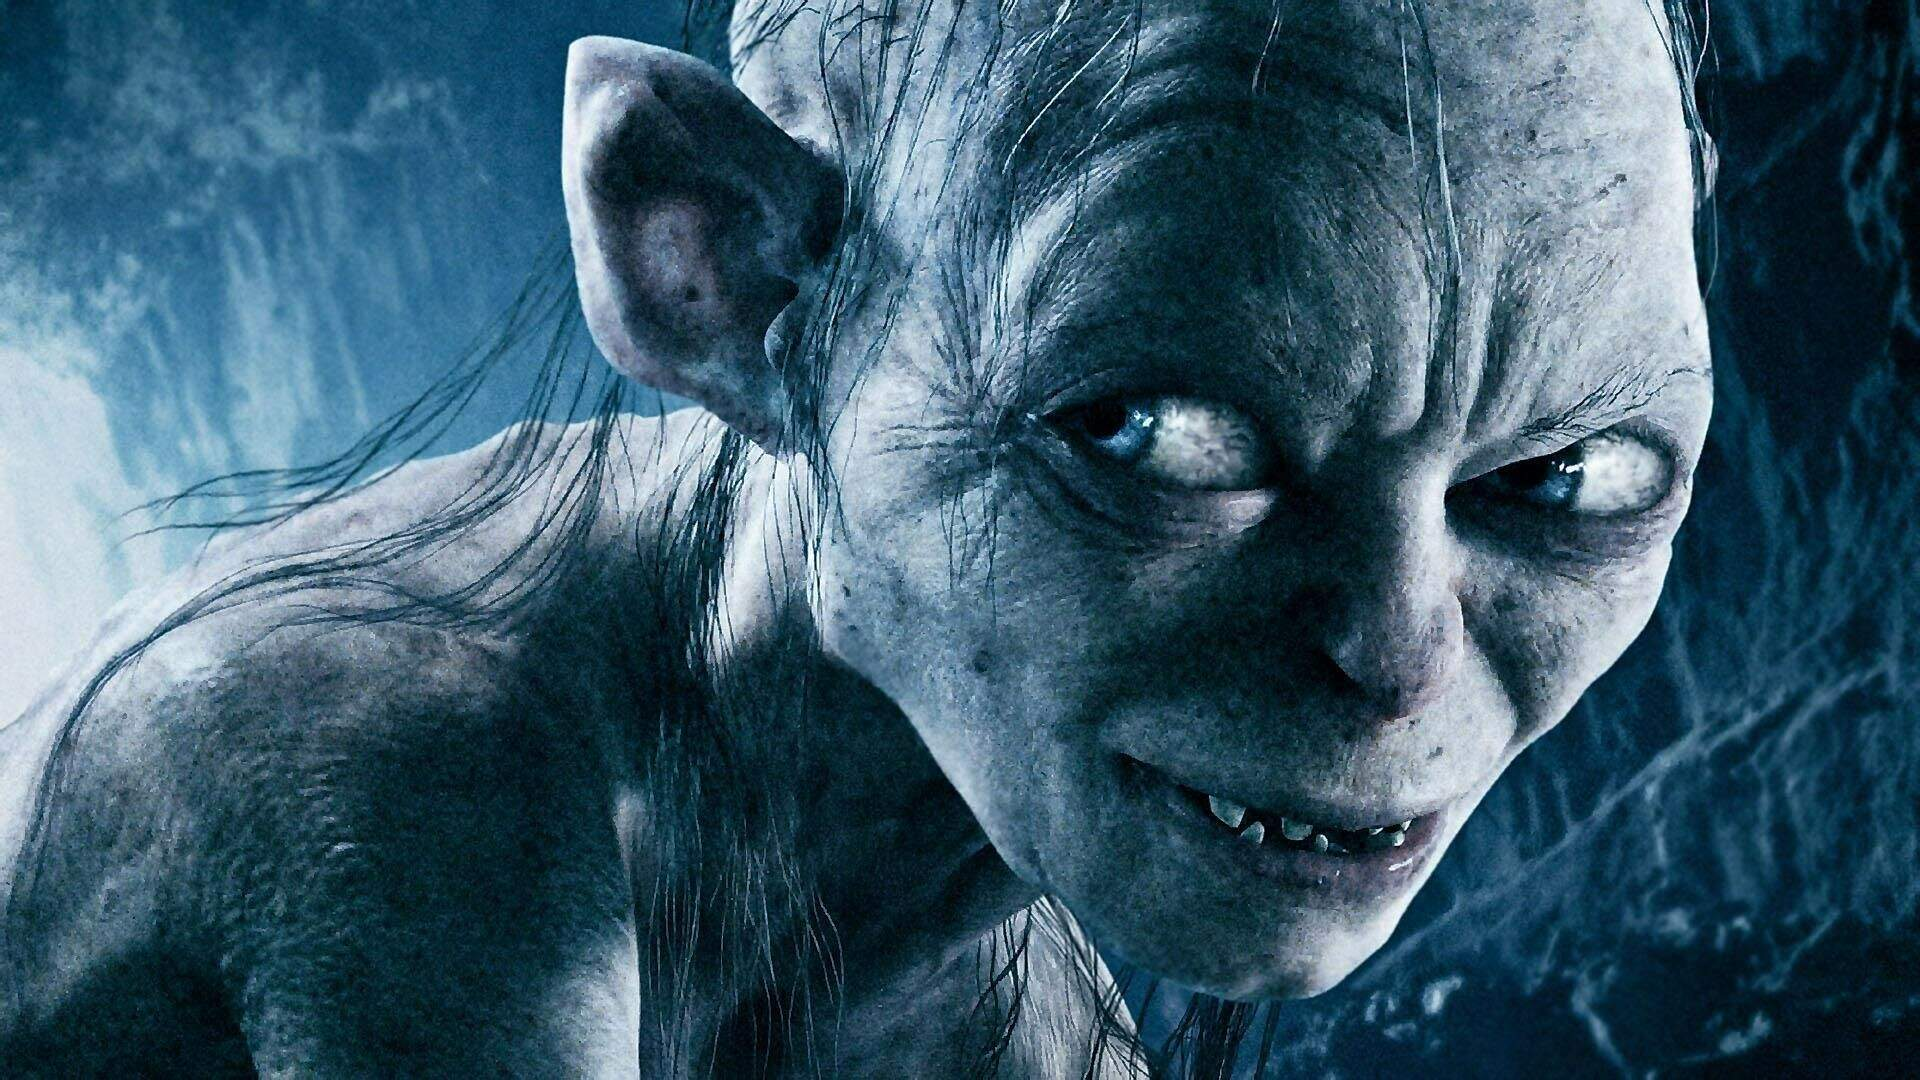 The Lord of the Rings: Gollum Screenshots Emerge Online